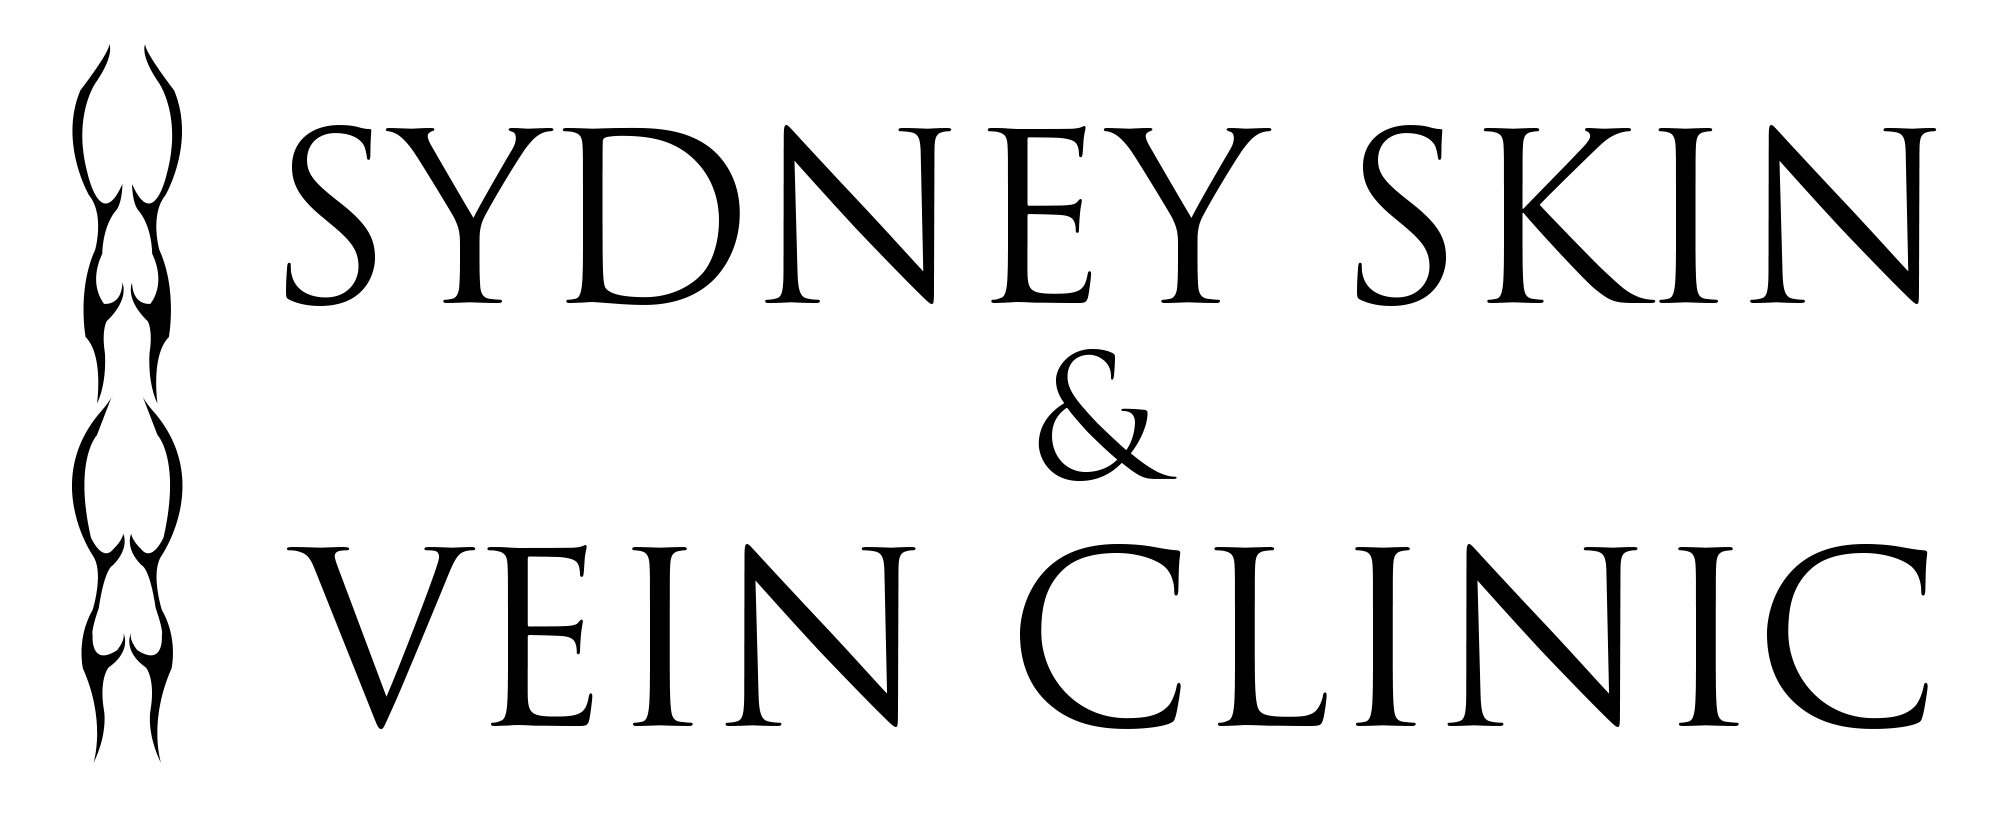 Sydney Skin and Veins Clinic logo